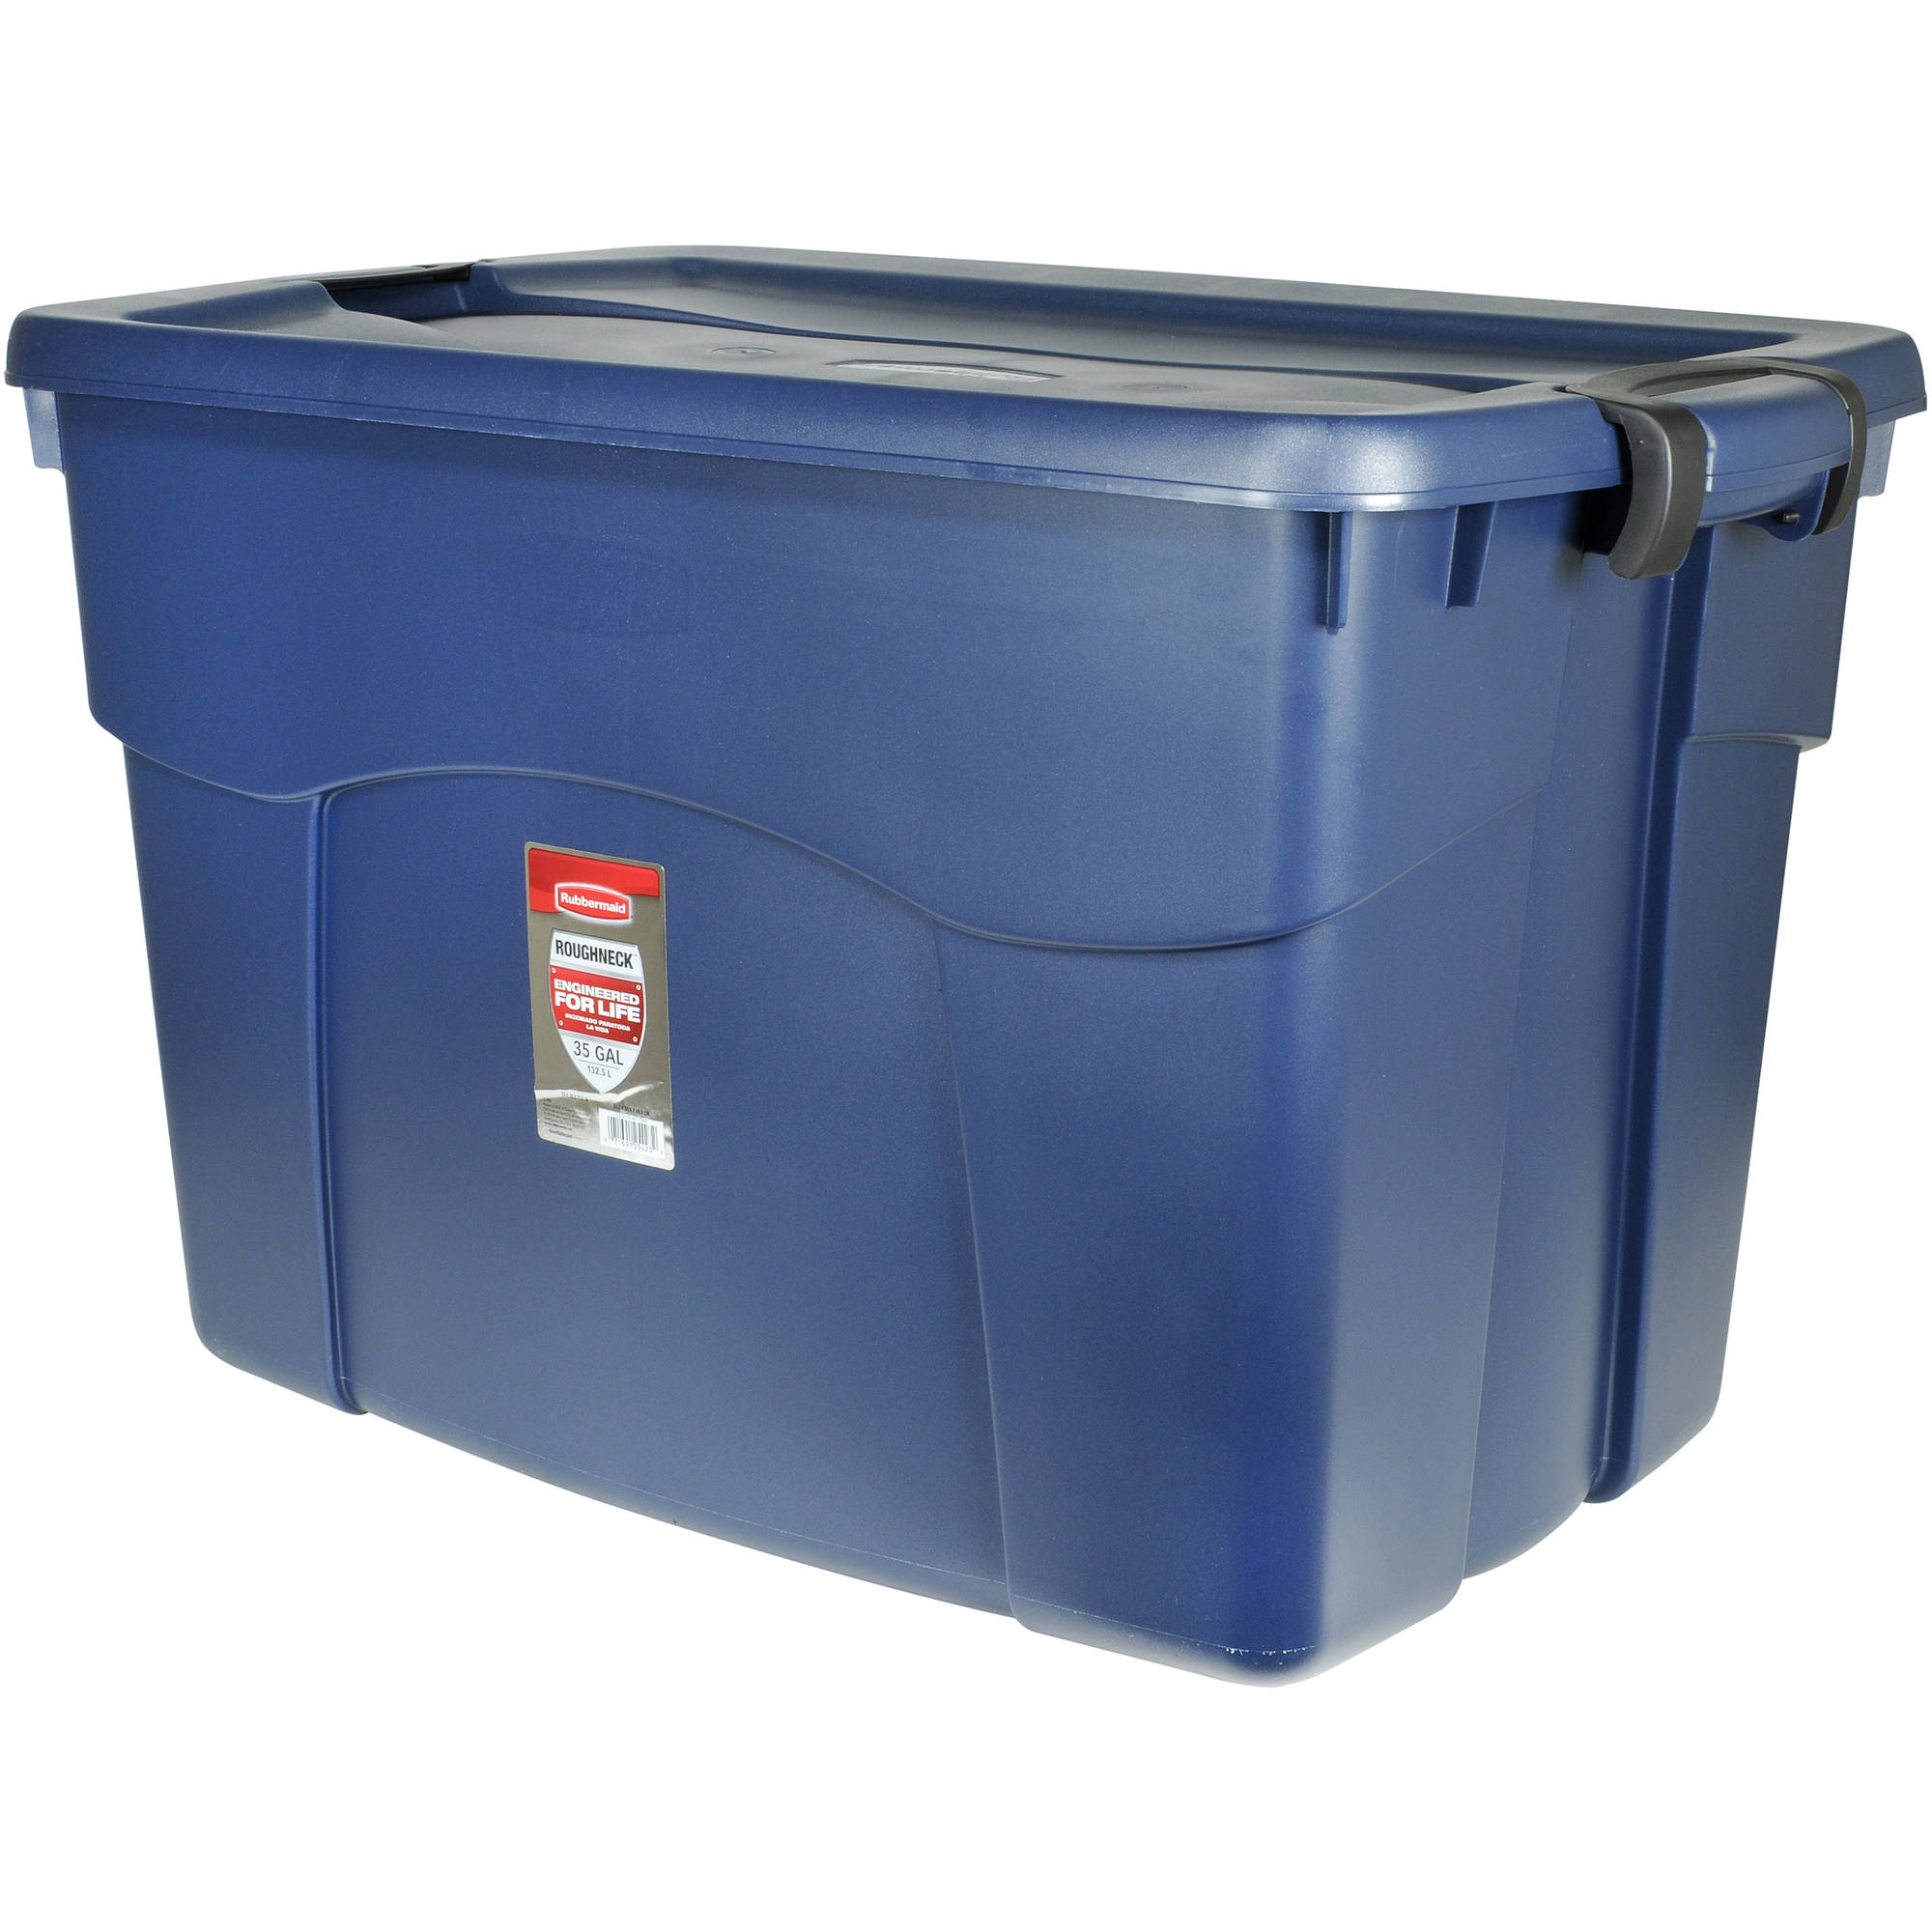 keywords sterilite tub medium uv tubs litre latching box lewisbins simple pack tote blue interior ylkcigl polyethylene plastic with similiar storage rubbermaid gallon roughneck containers